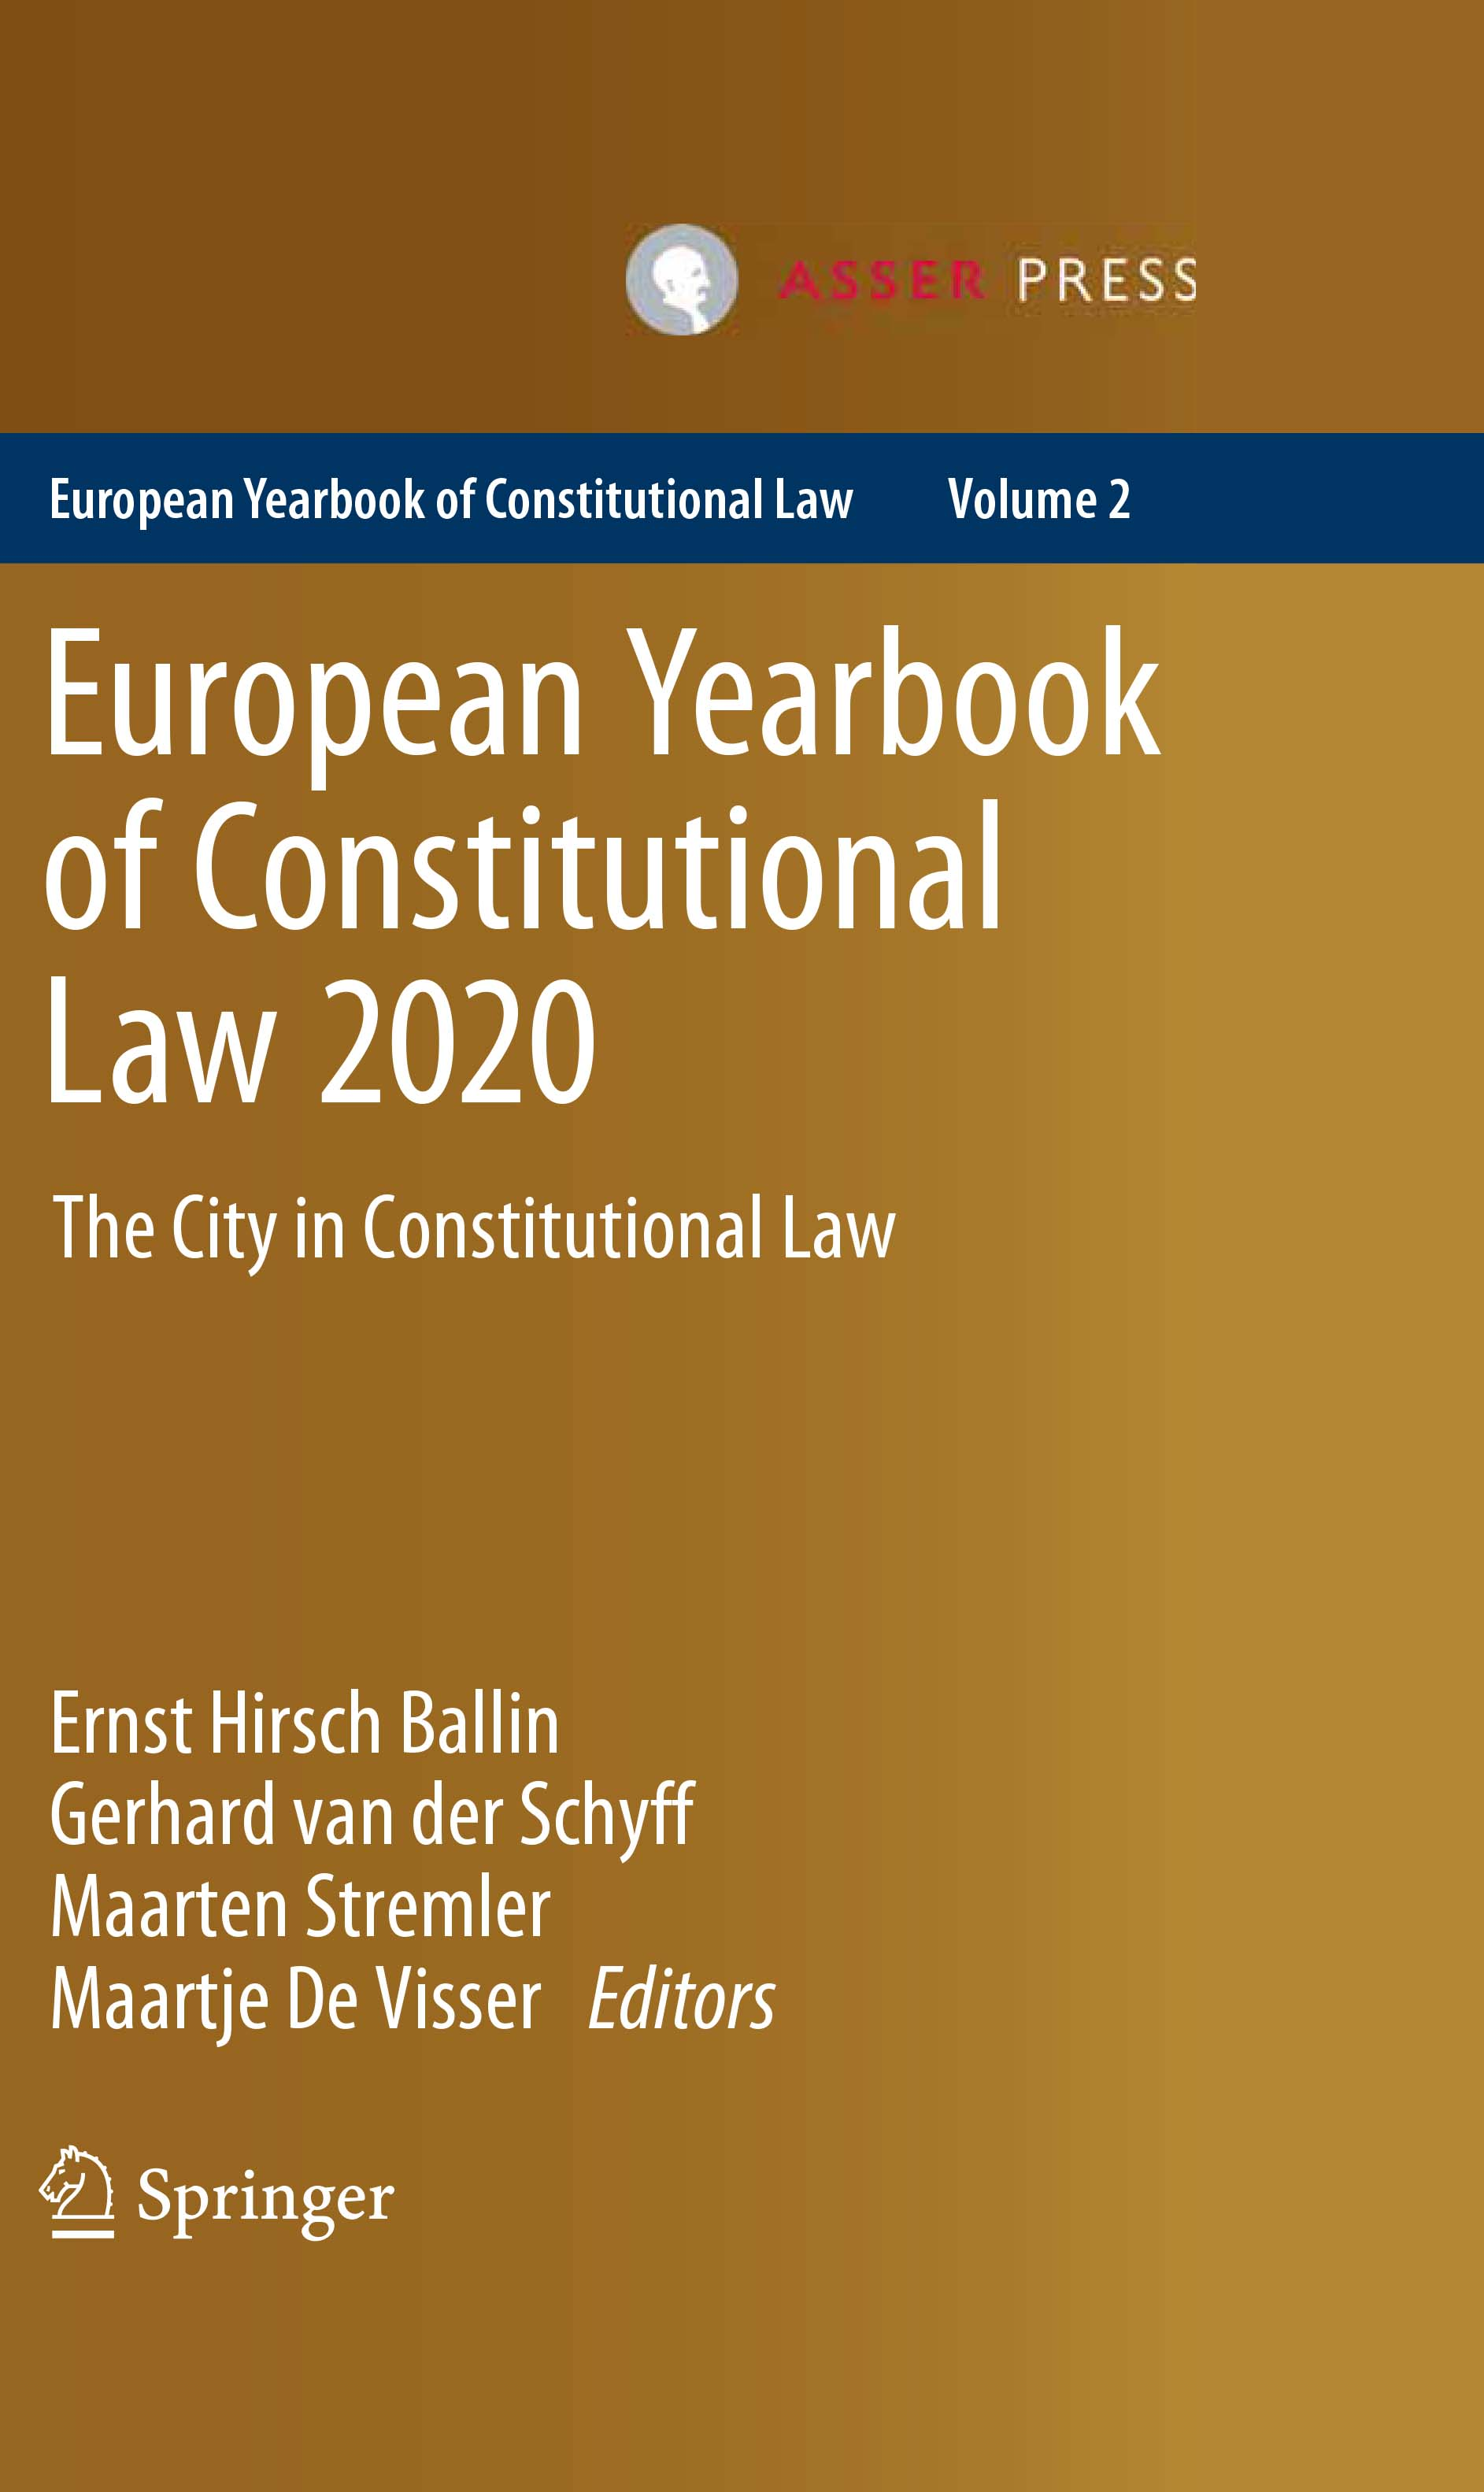 European Yearbook of Constitutional Law 2020 - The City in Constitutional Law